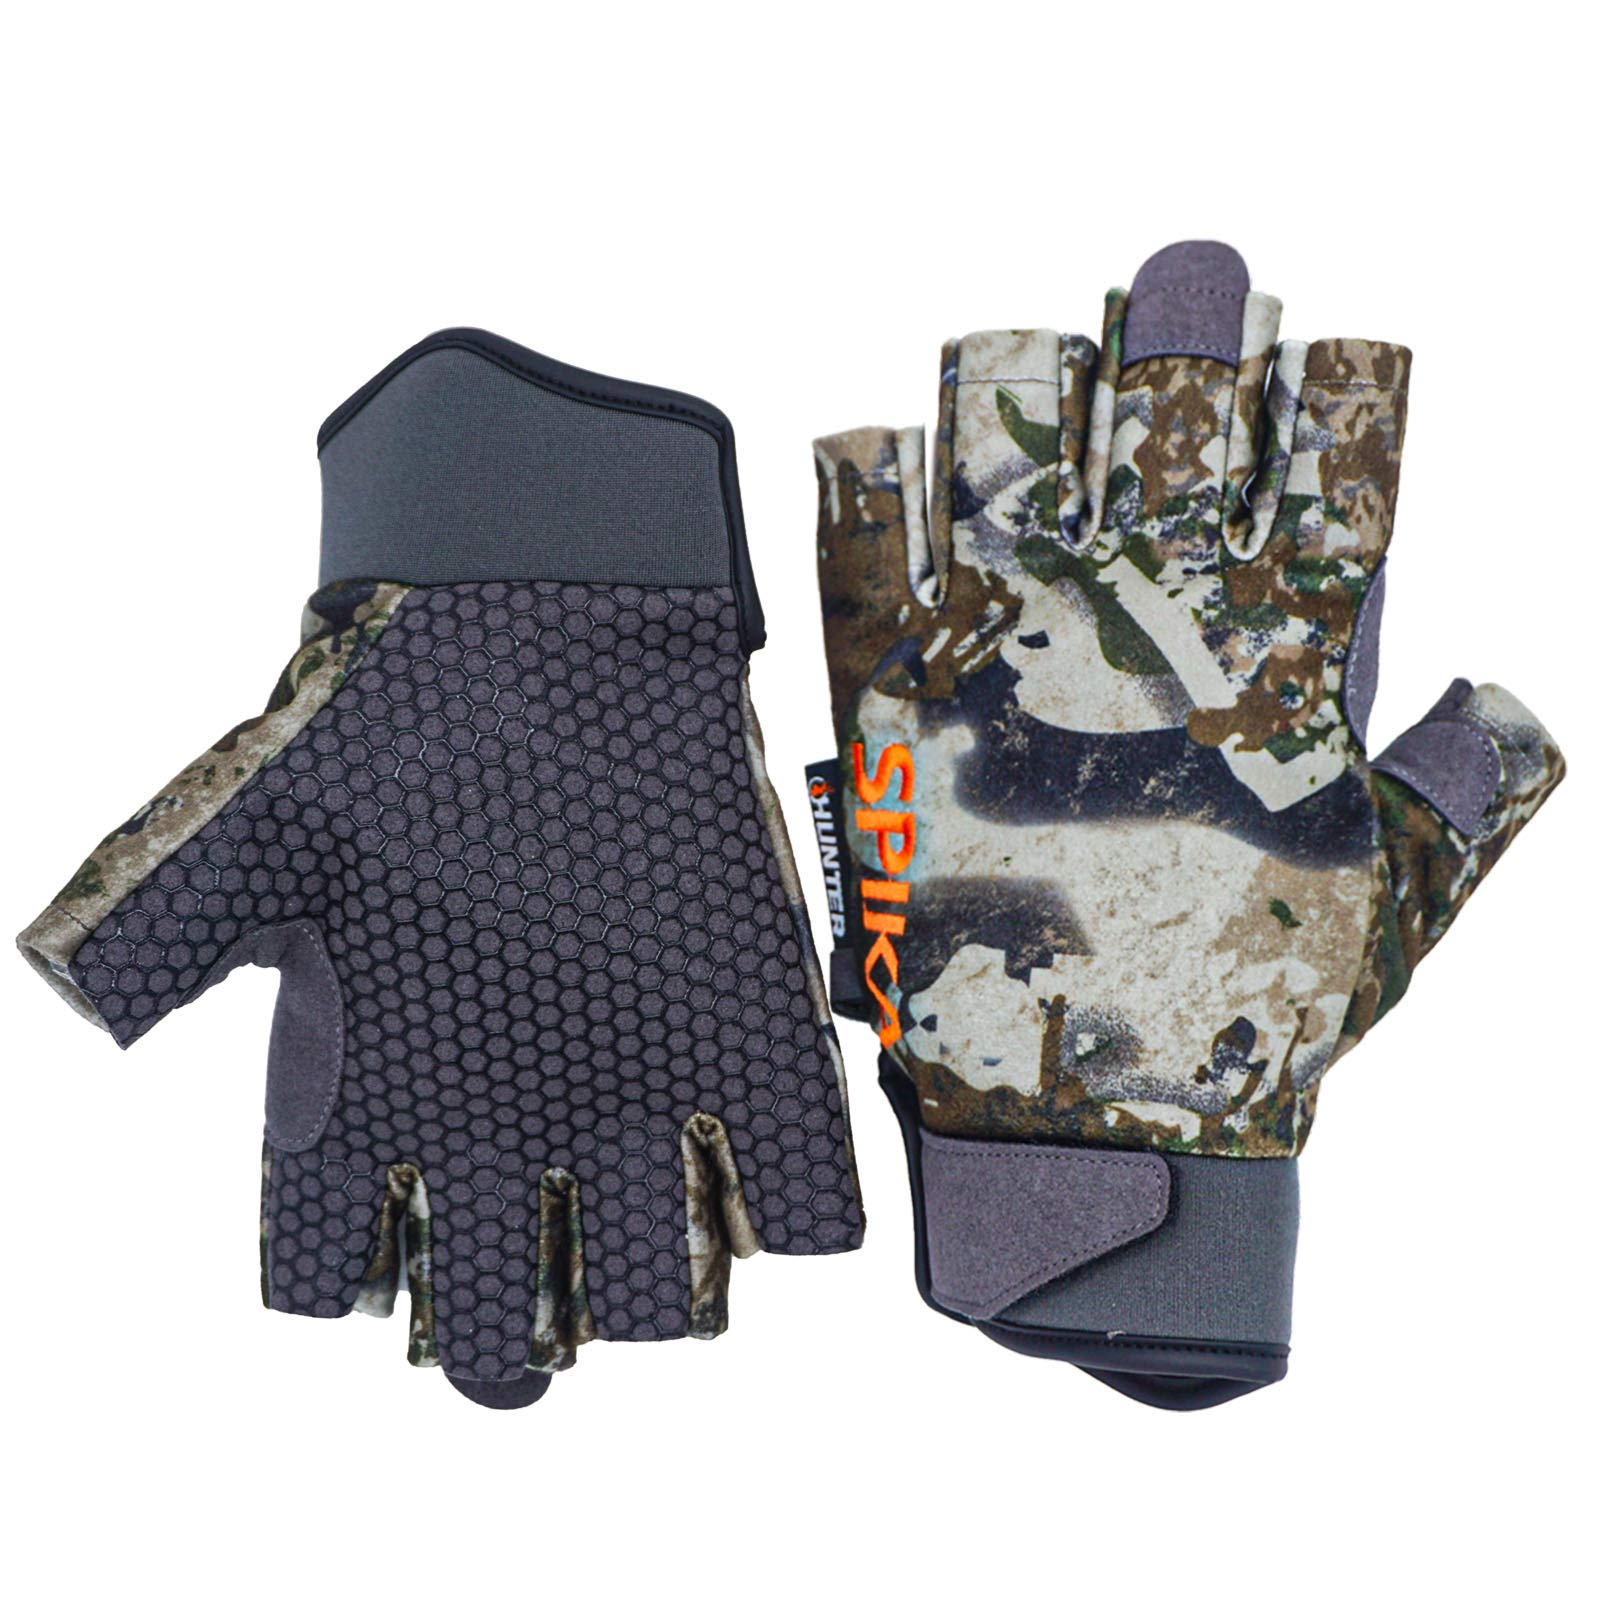 SPIKA Camouflage Fingerless and Full Finger Gloves Touchscreen Non-Slip Outdoor Sports Working Camping Hiking Cycling Climbing Hunting Gloves